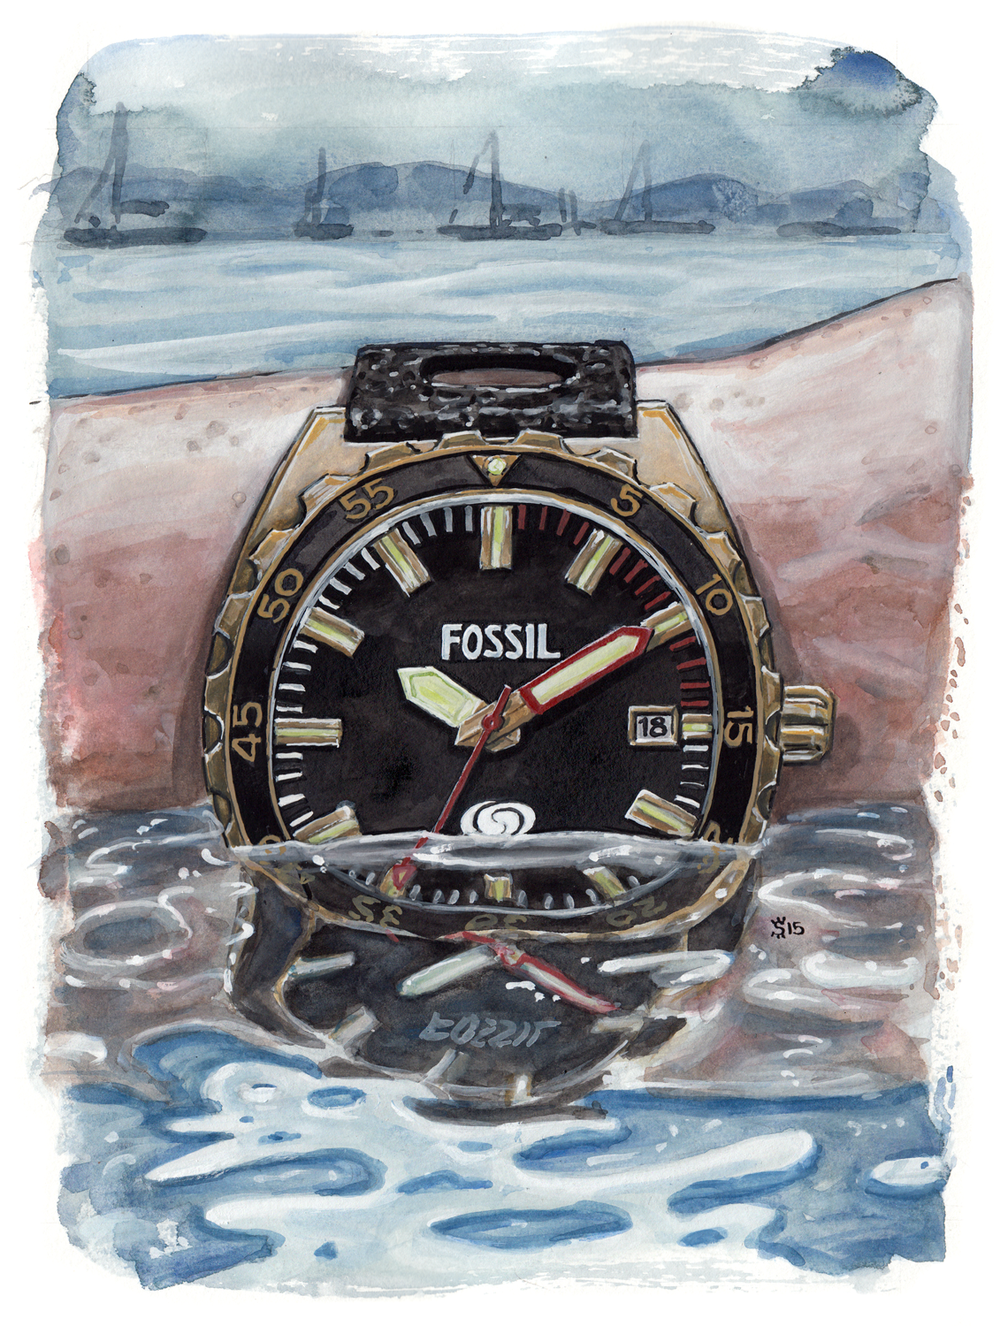 Fossil Diver